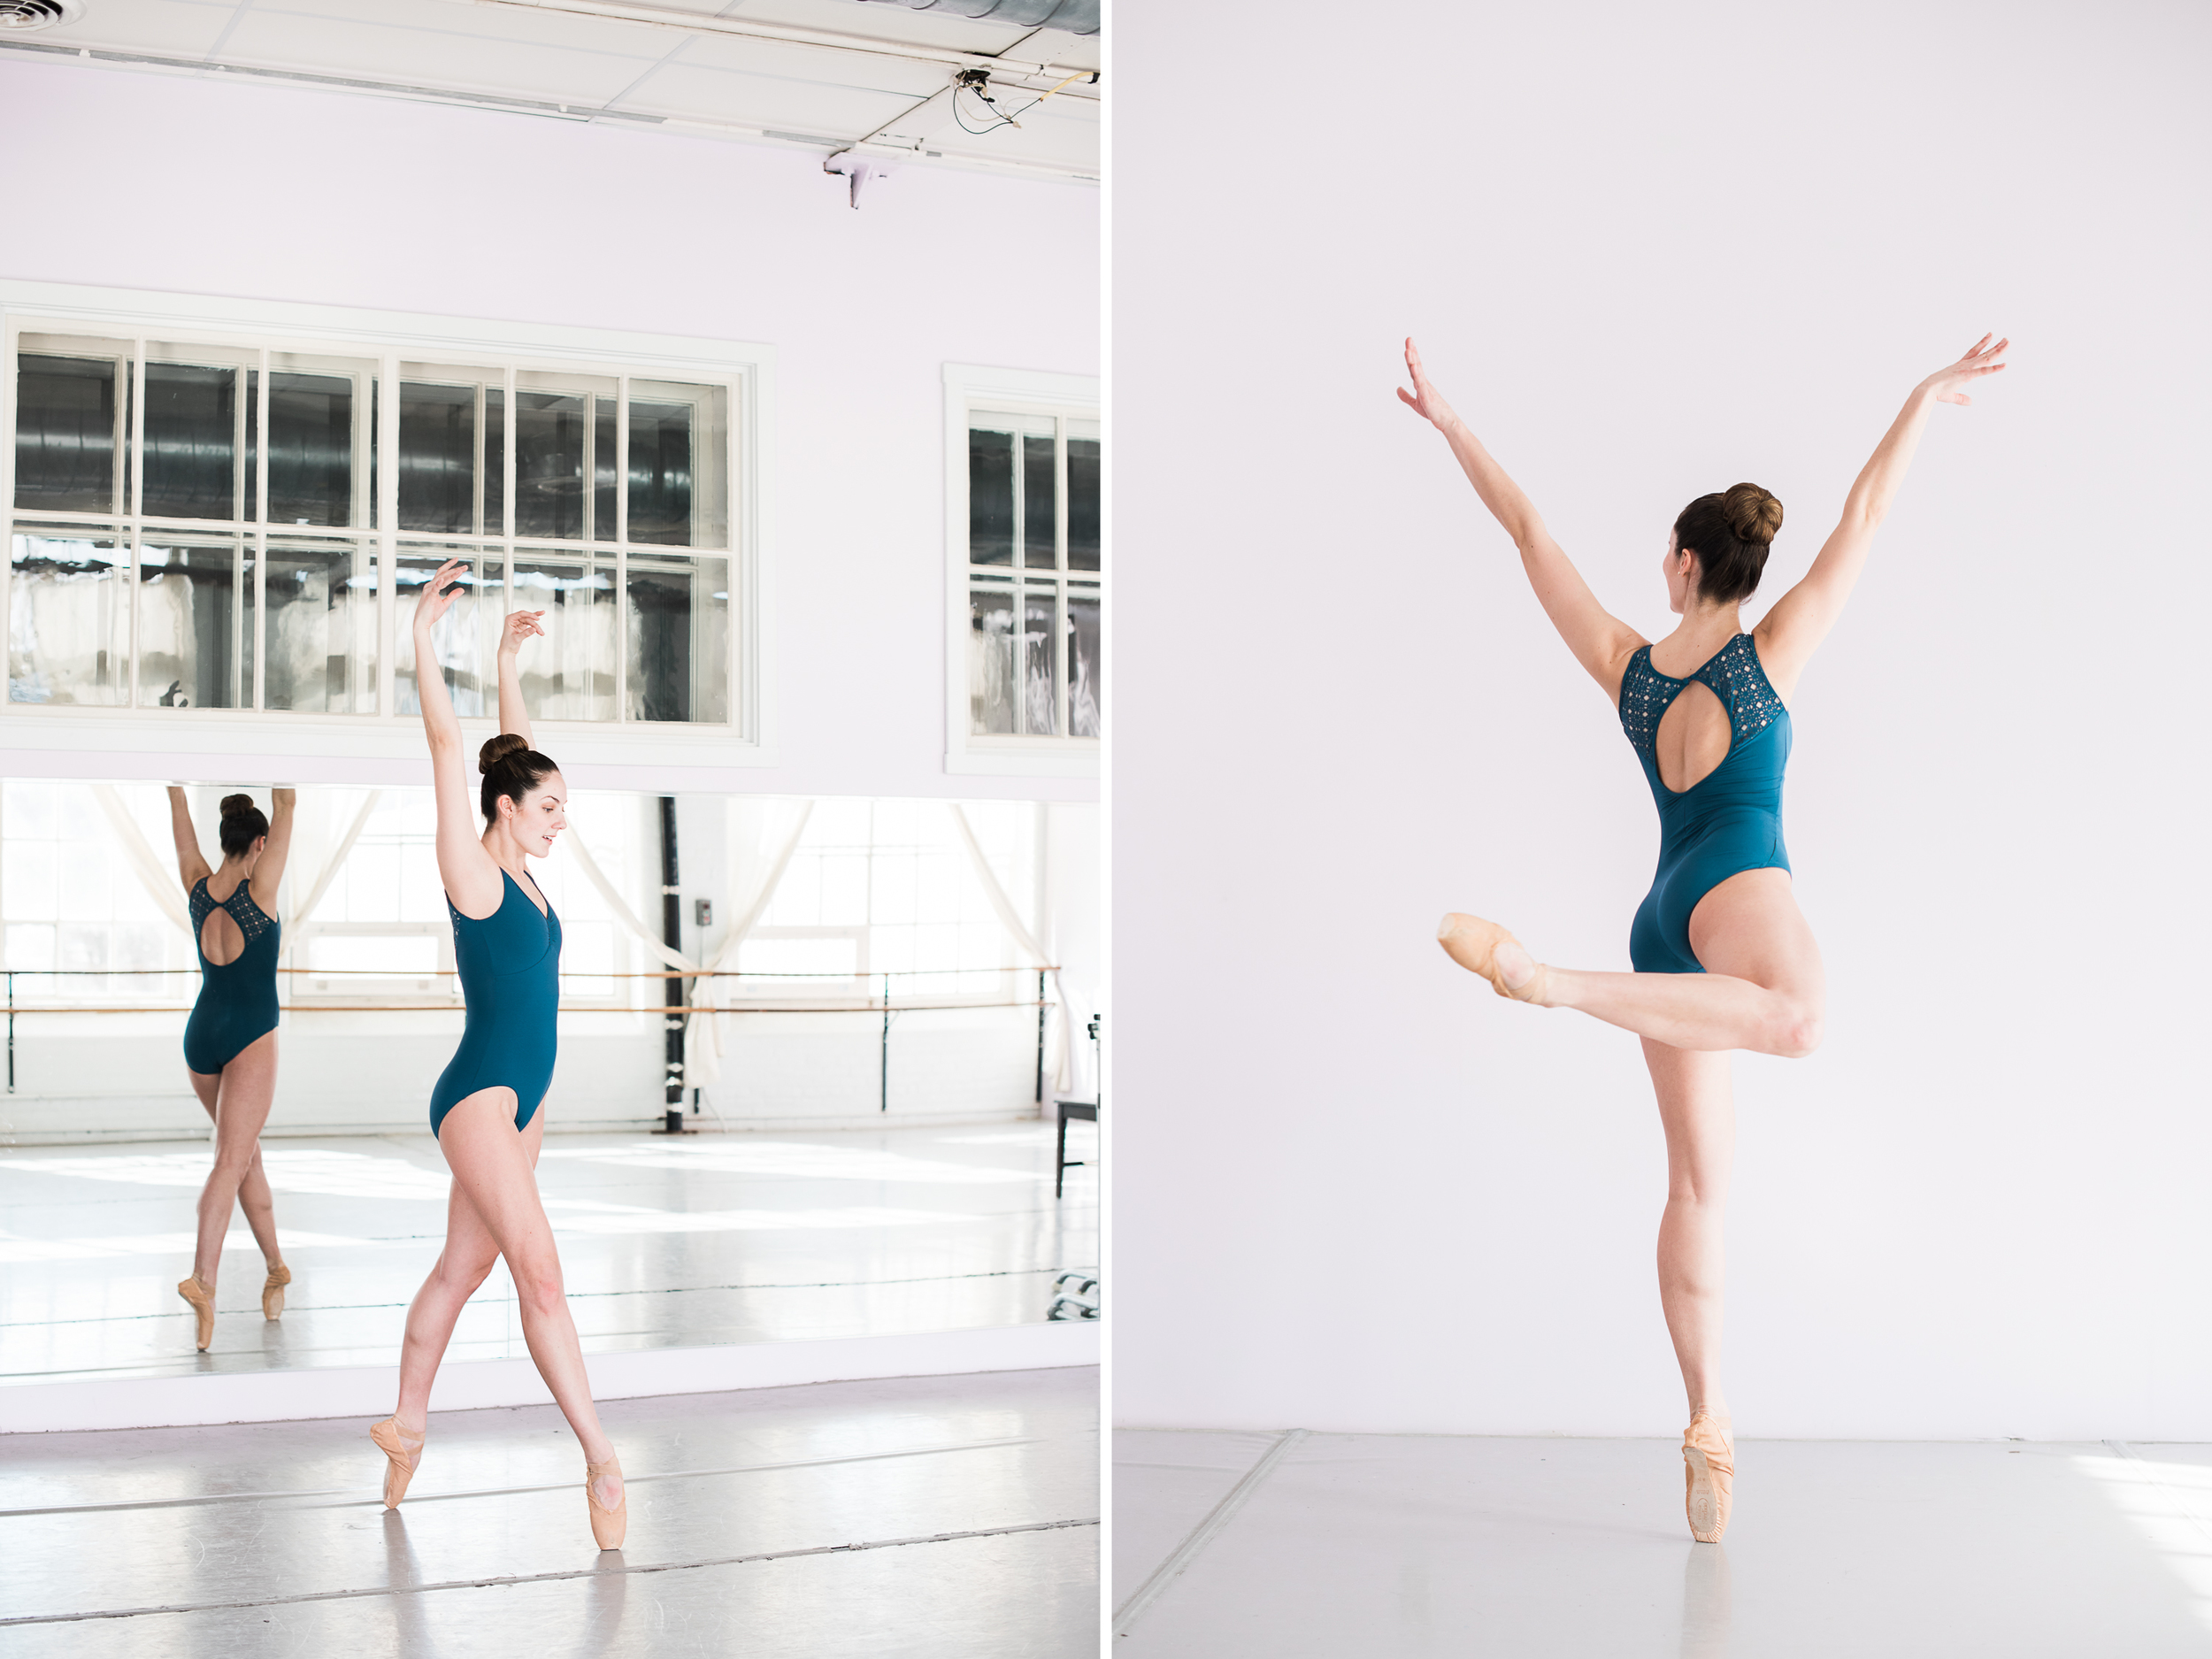 Ballet Photographer located in Western Massachusetts